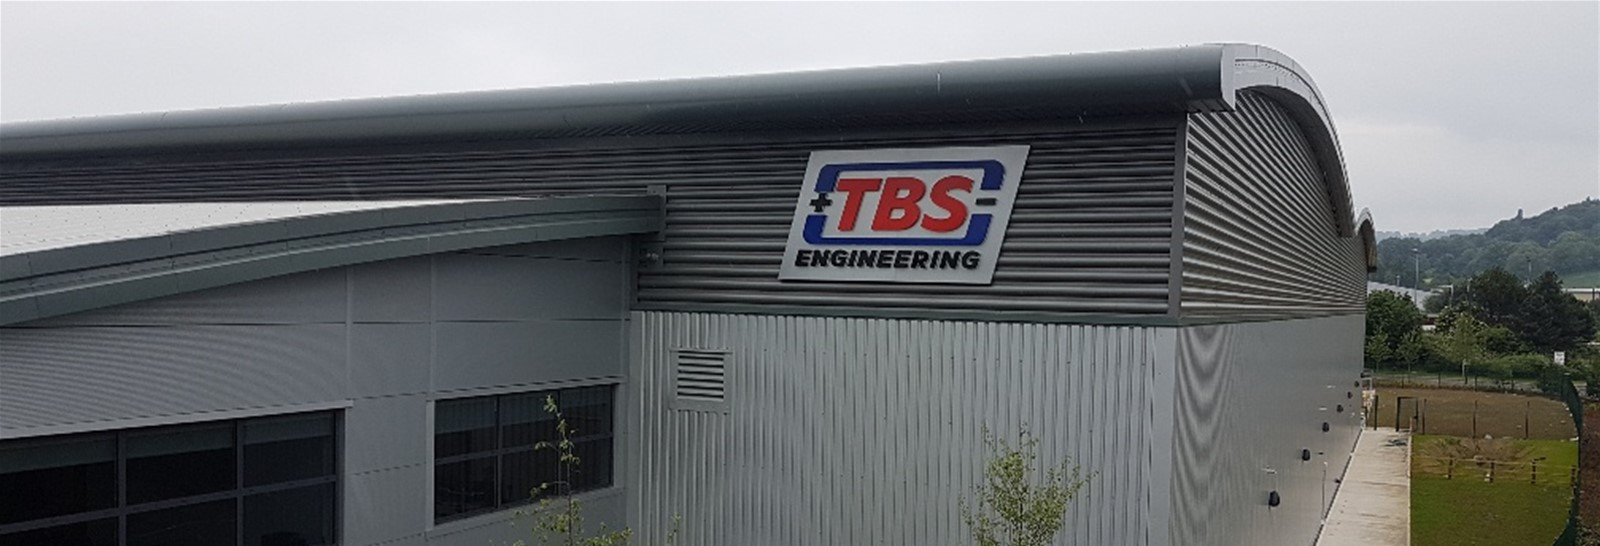 TBS Engineering signage by Signs Express